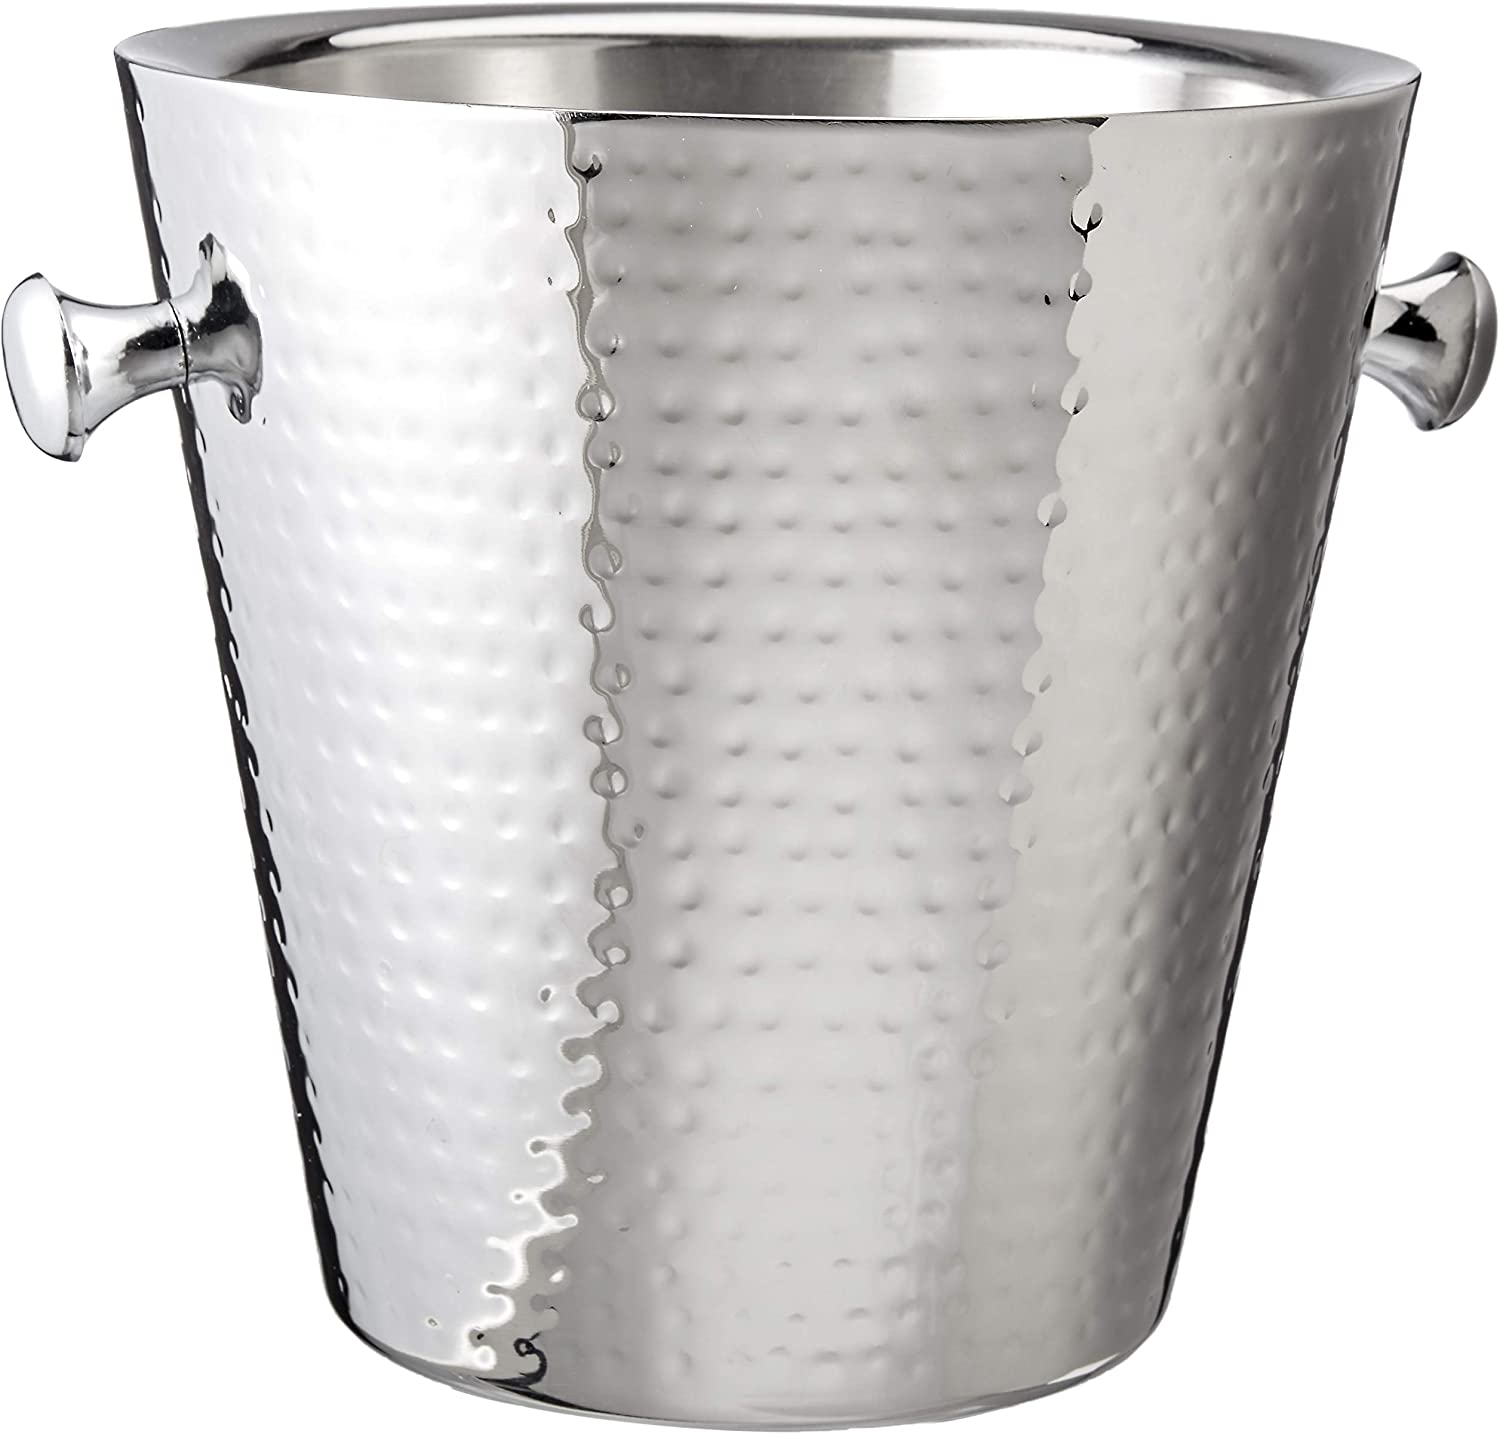 "Elegance Hammered Stainless Steel Doublewall Champagne Bucket, 9"", Silver"